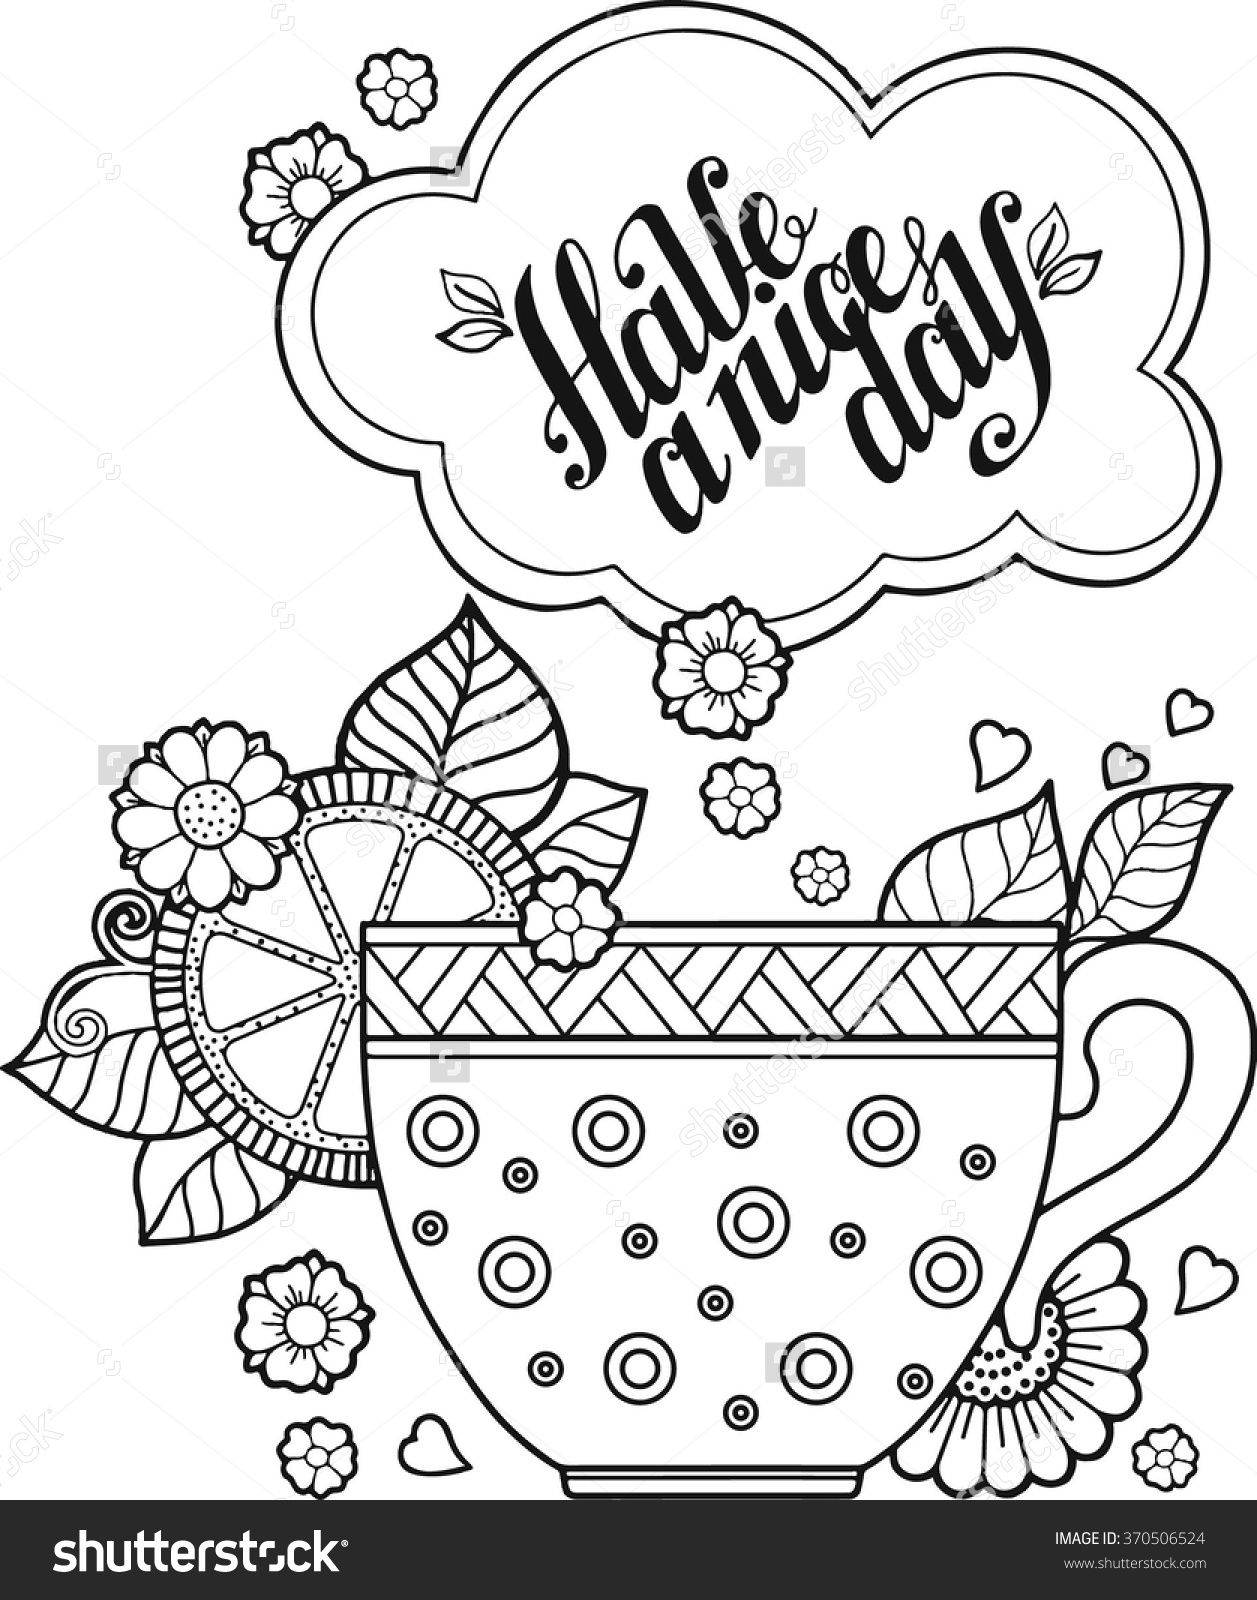 cup coloring pages - hand drawing vector a cup of herbal tea for a good day